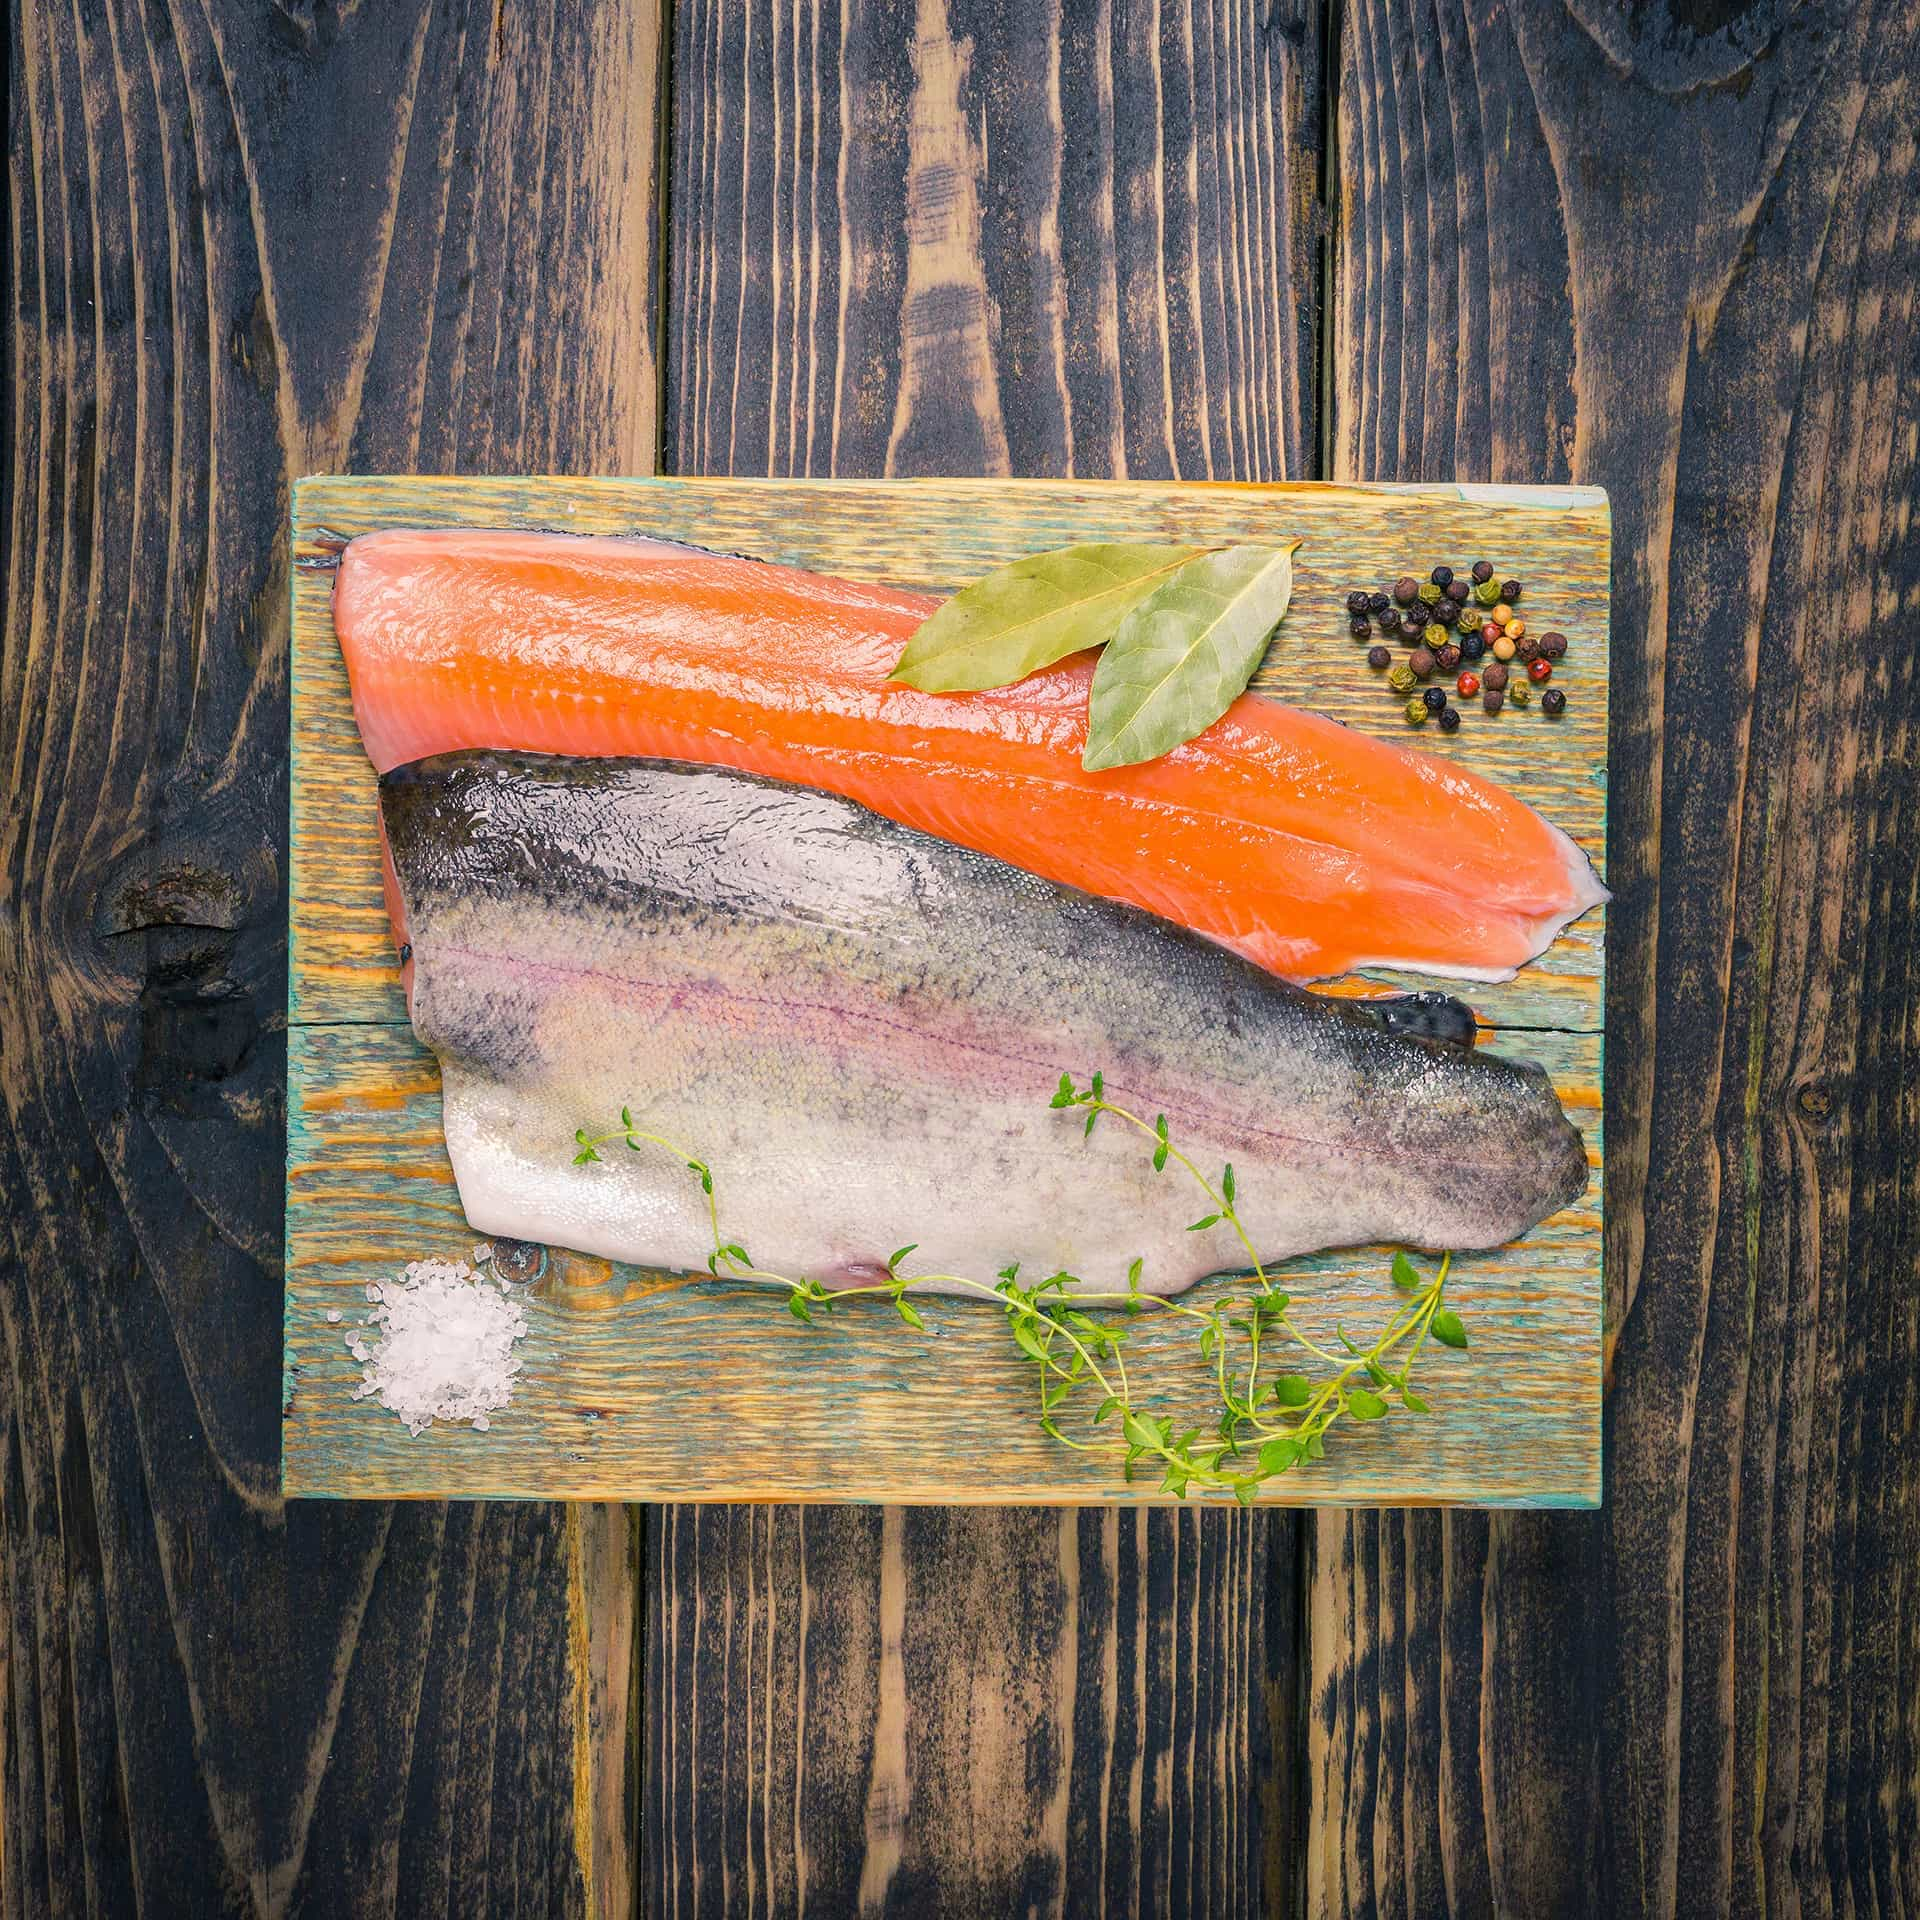 Trout fillets on a chopping board